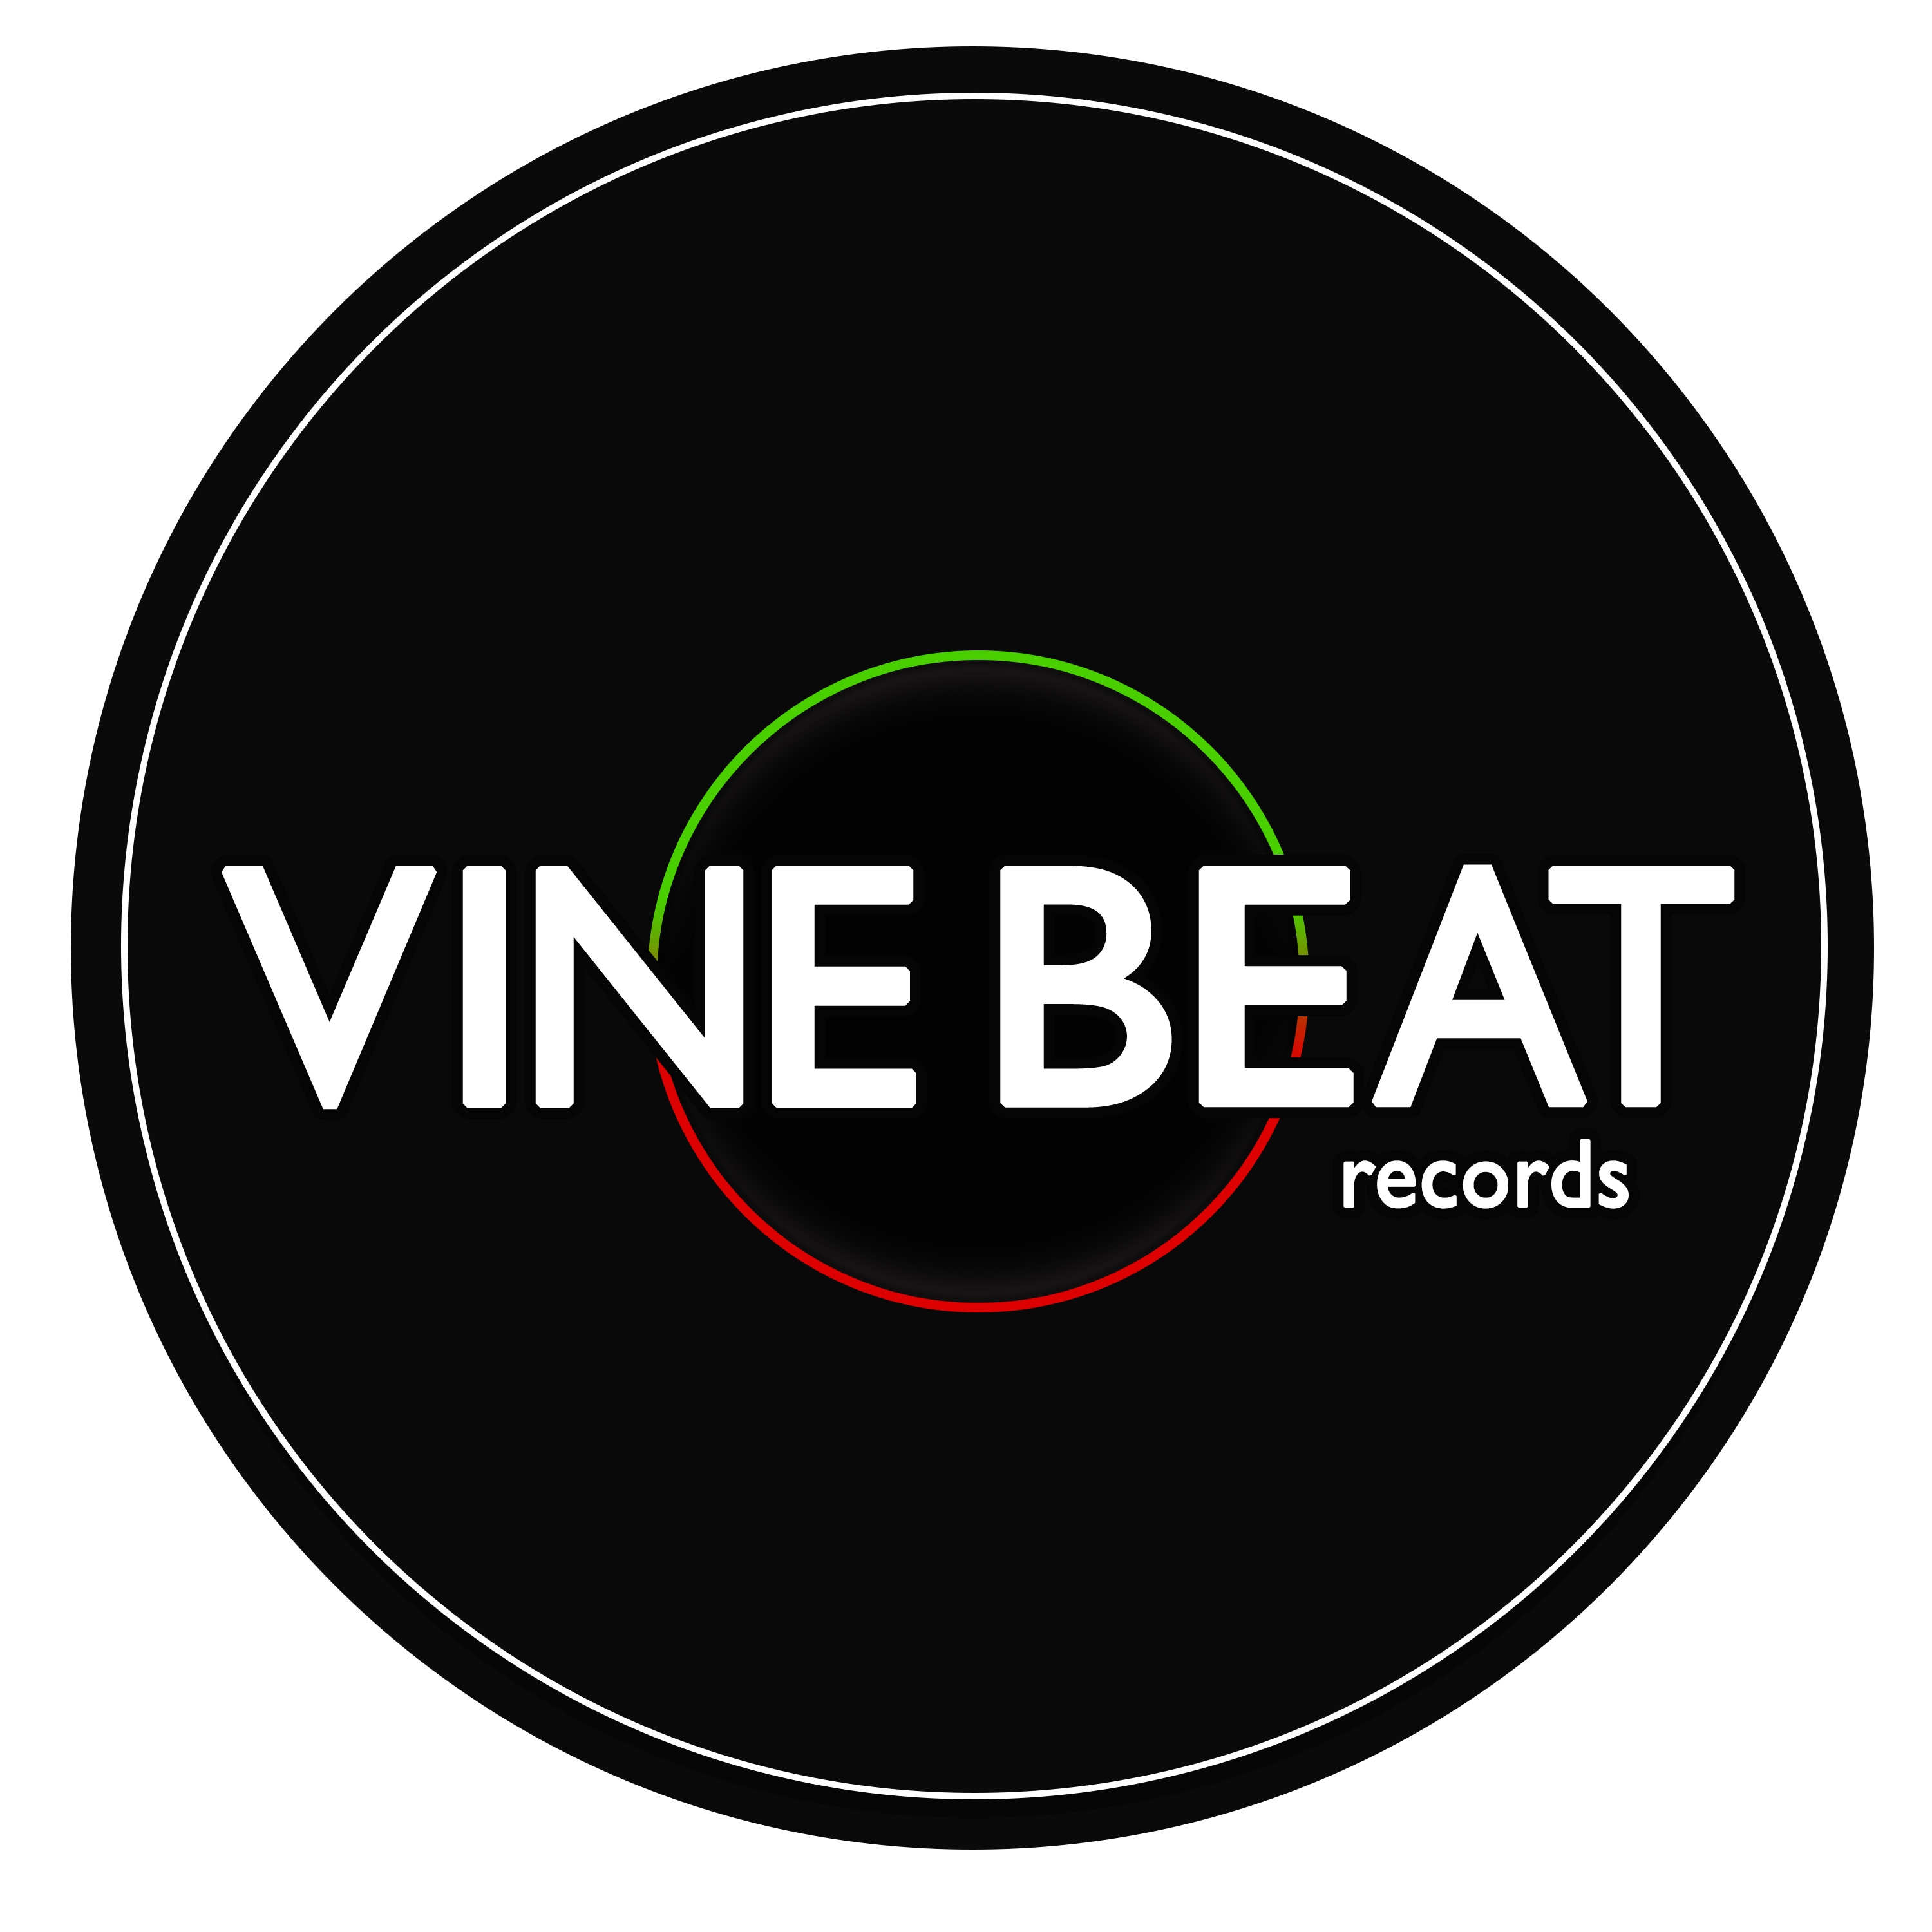 VineBeat Records logo loading